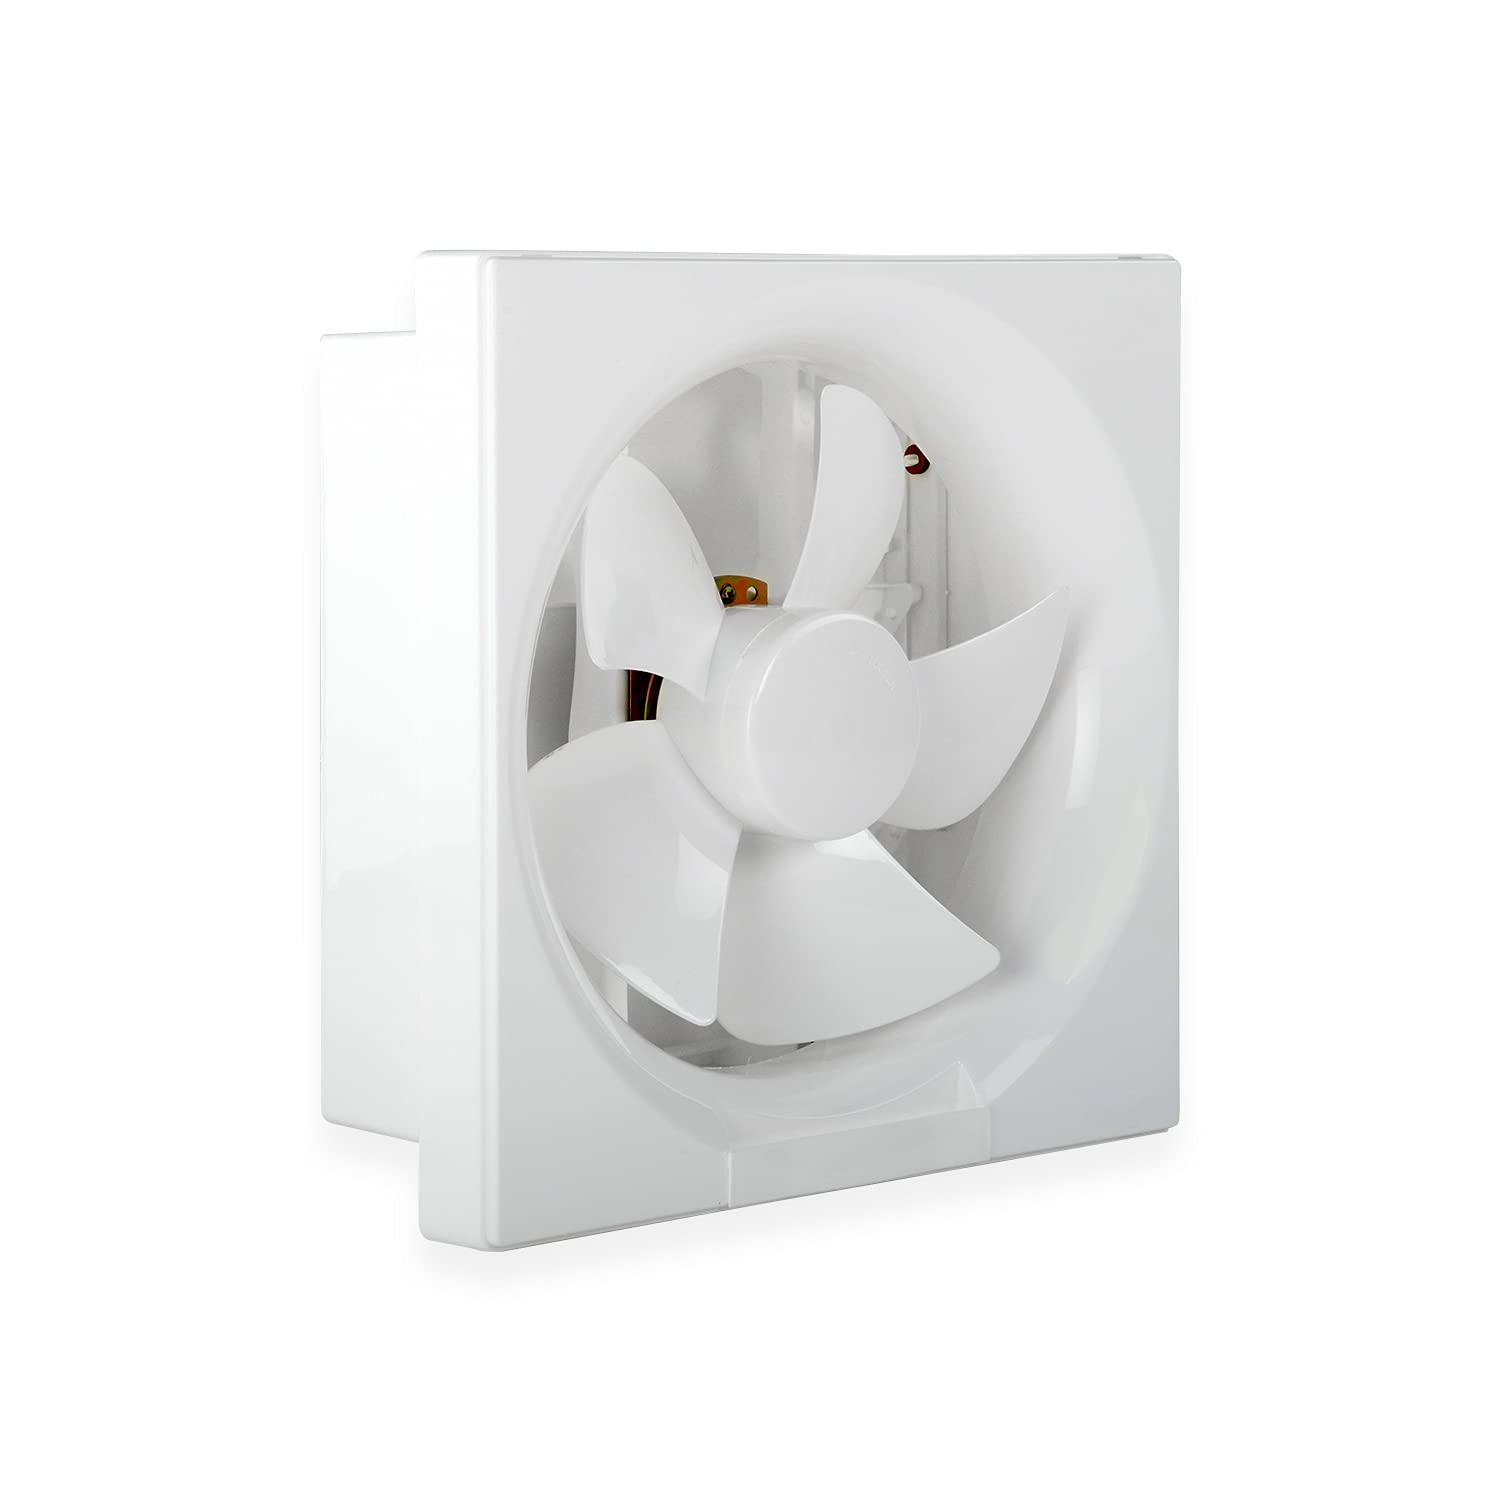 Luminous Vento Deluxe 20 mm Exhaust Fan for Kitchen, Bathroom, and Office  Cut out Size   Sq 20 x 20 mm, White